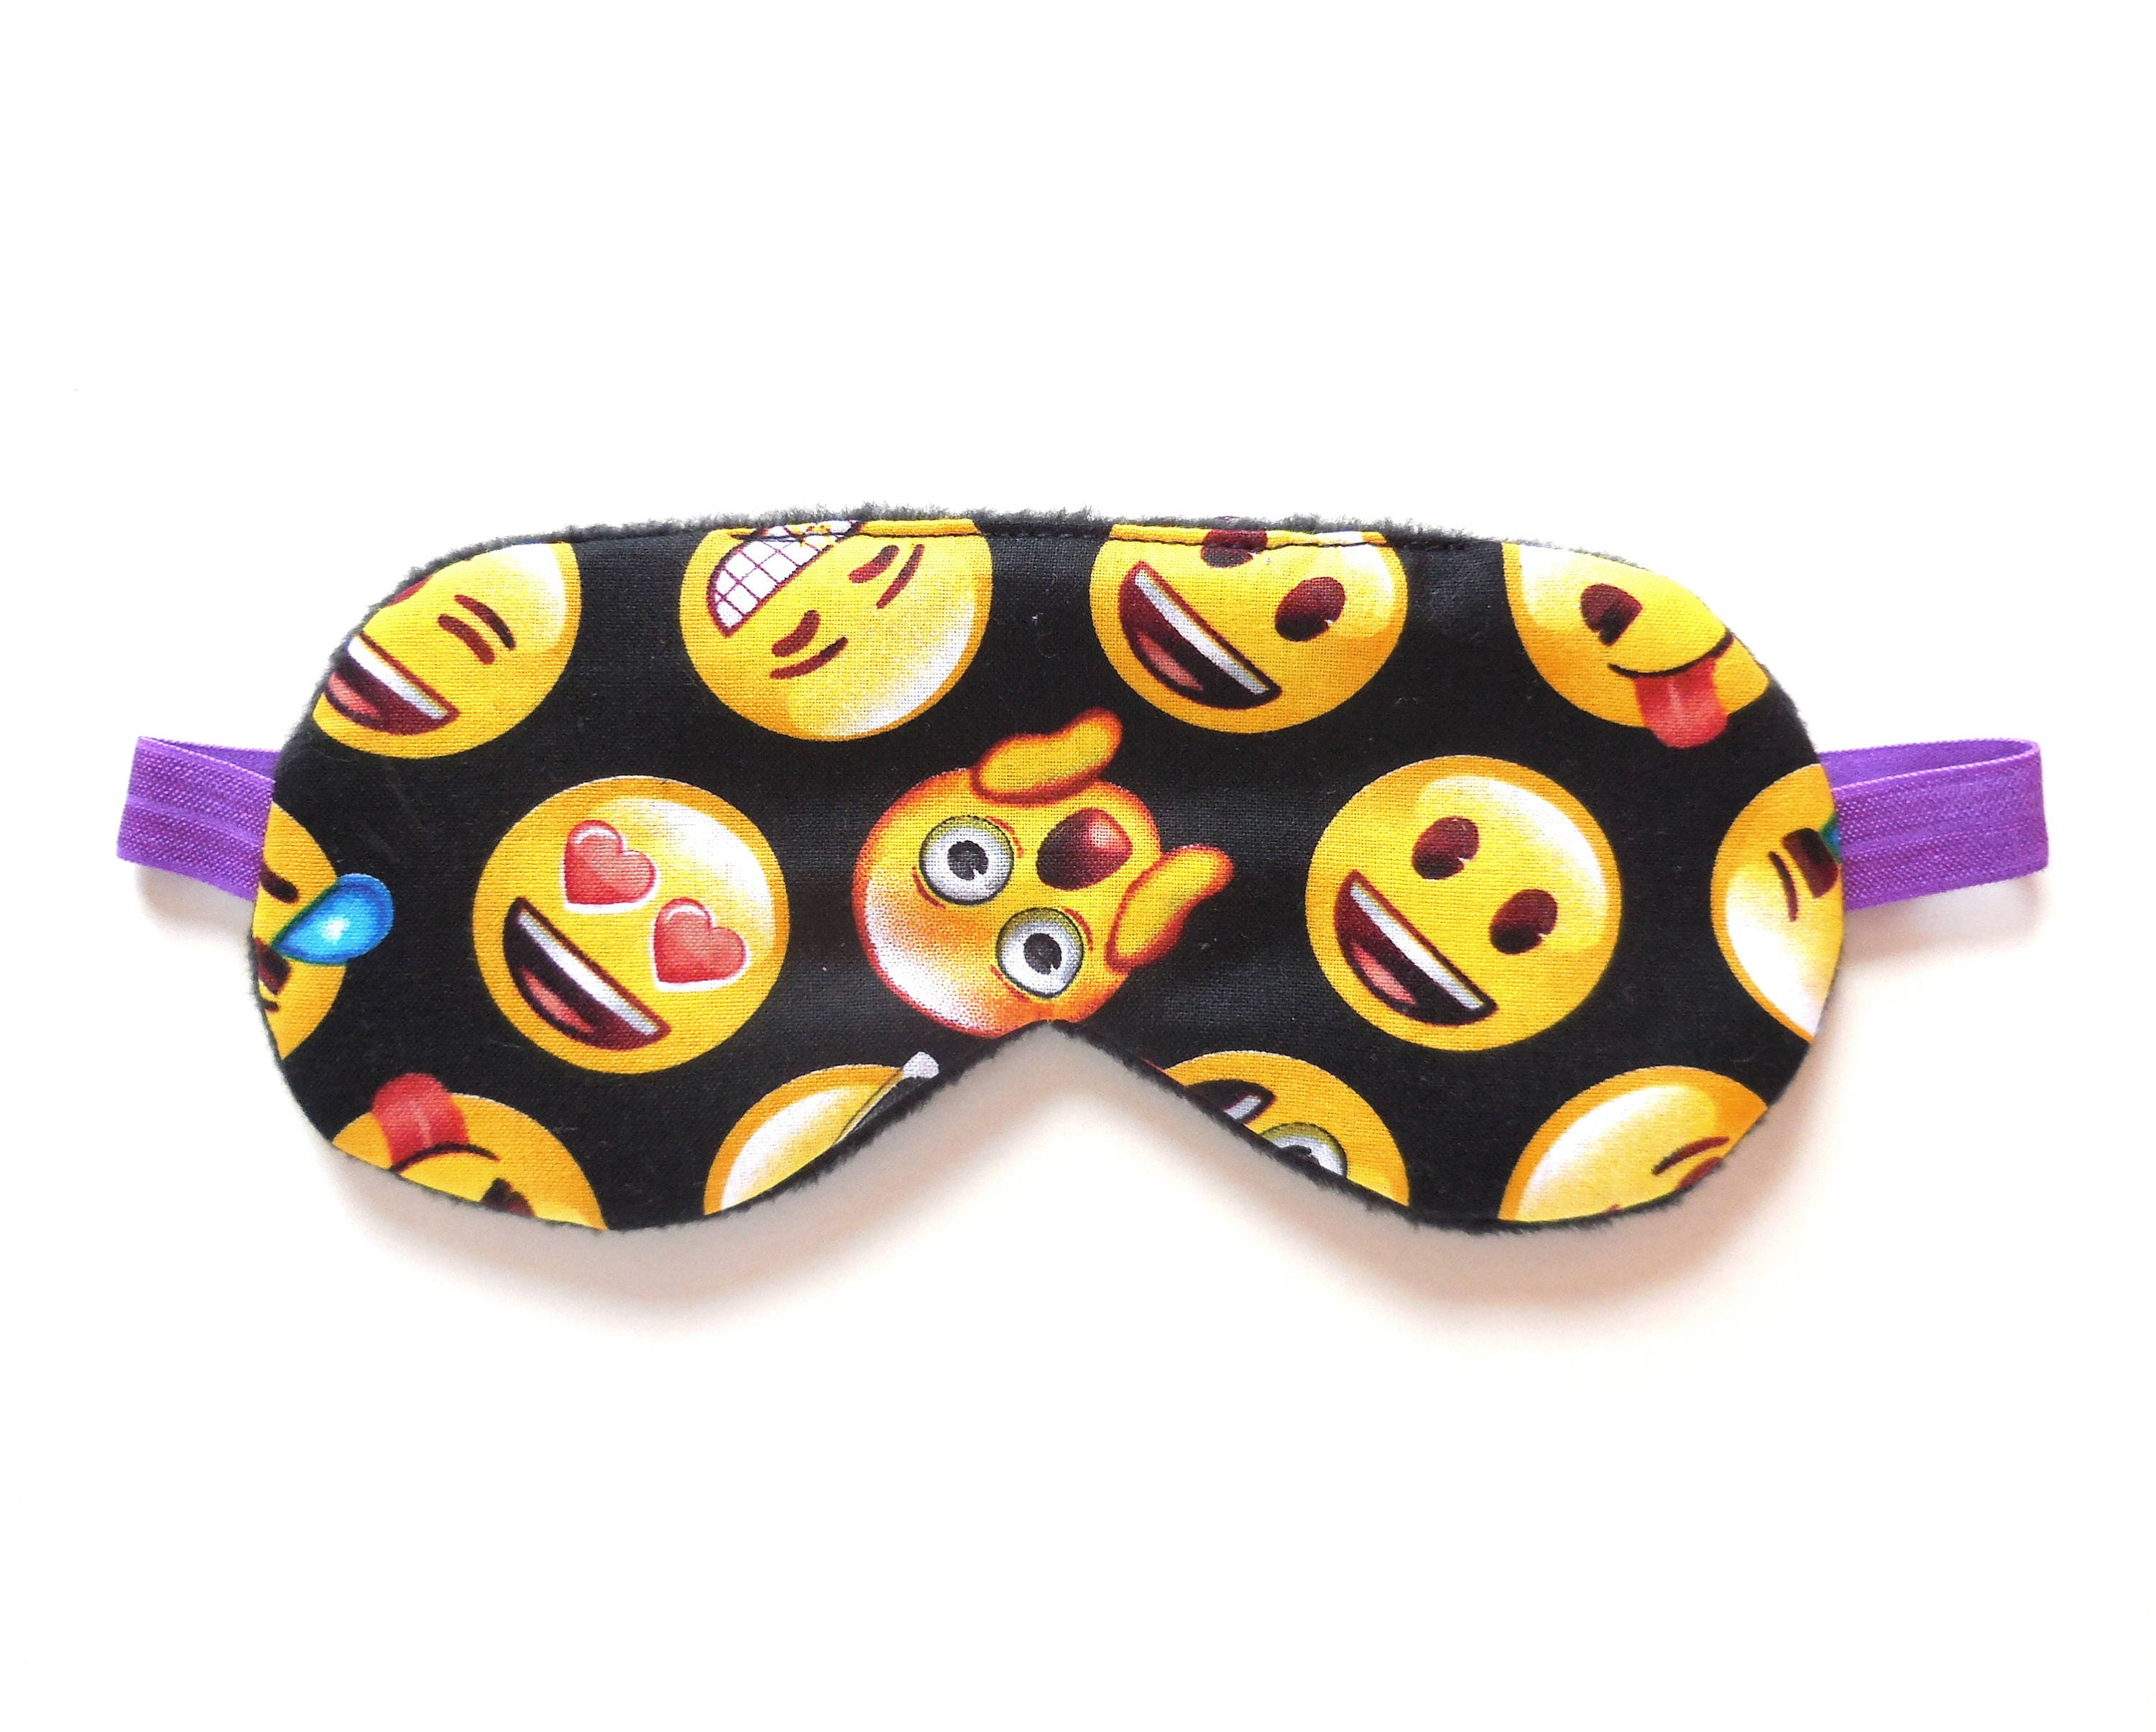 Emoji Sleep Mask Girl Eyemask Teen Blindfold Child Kid